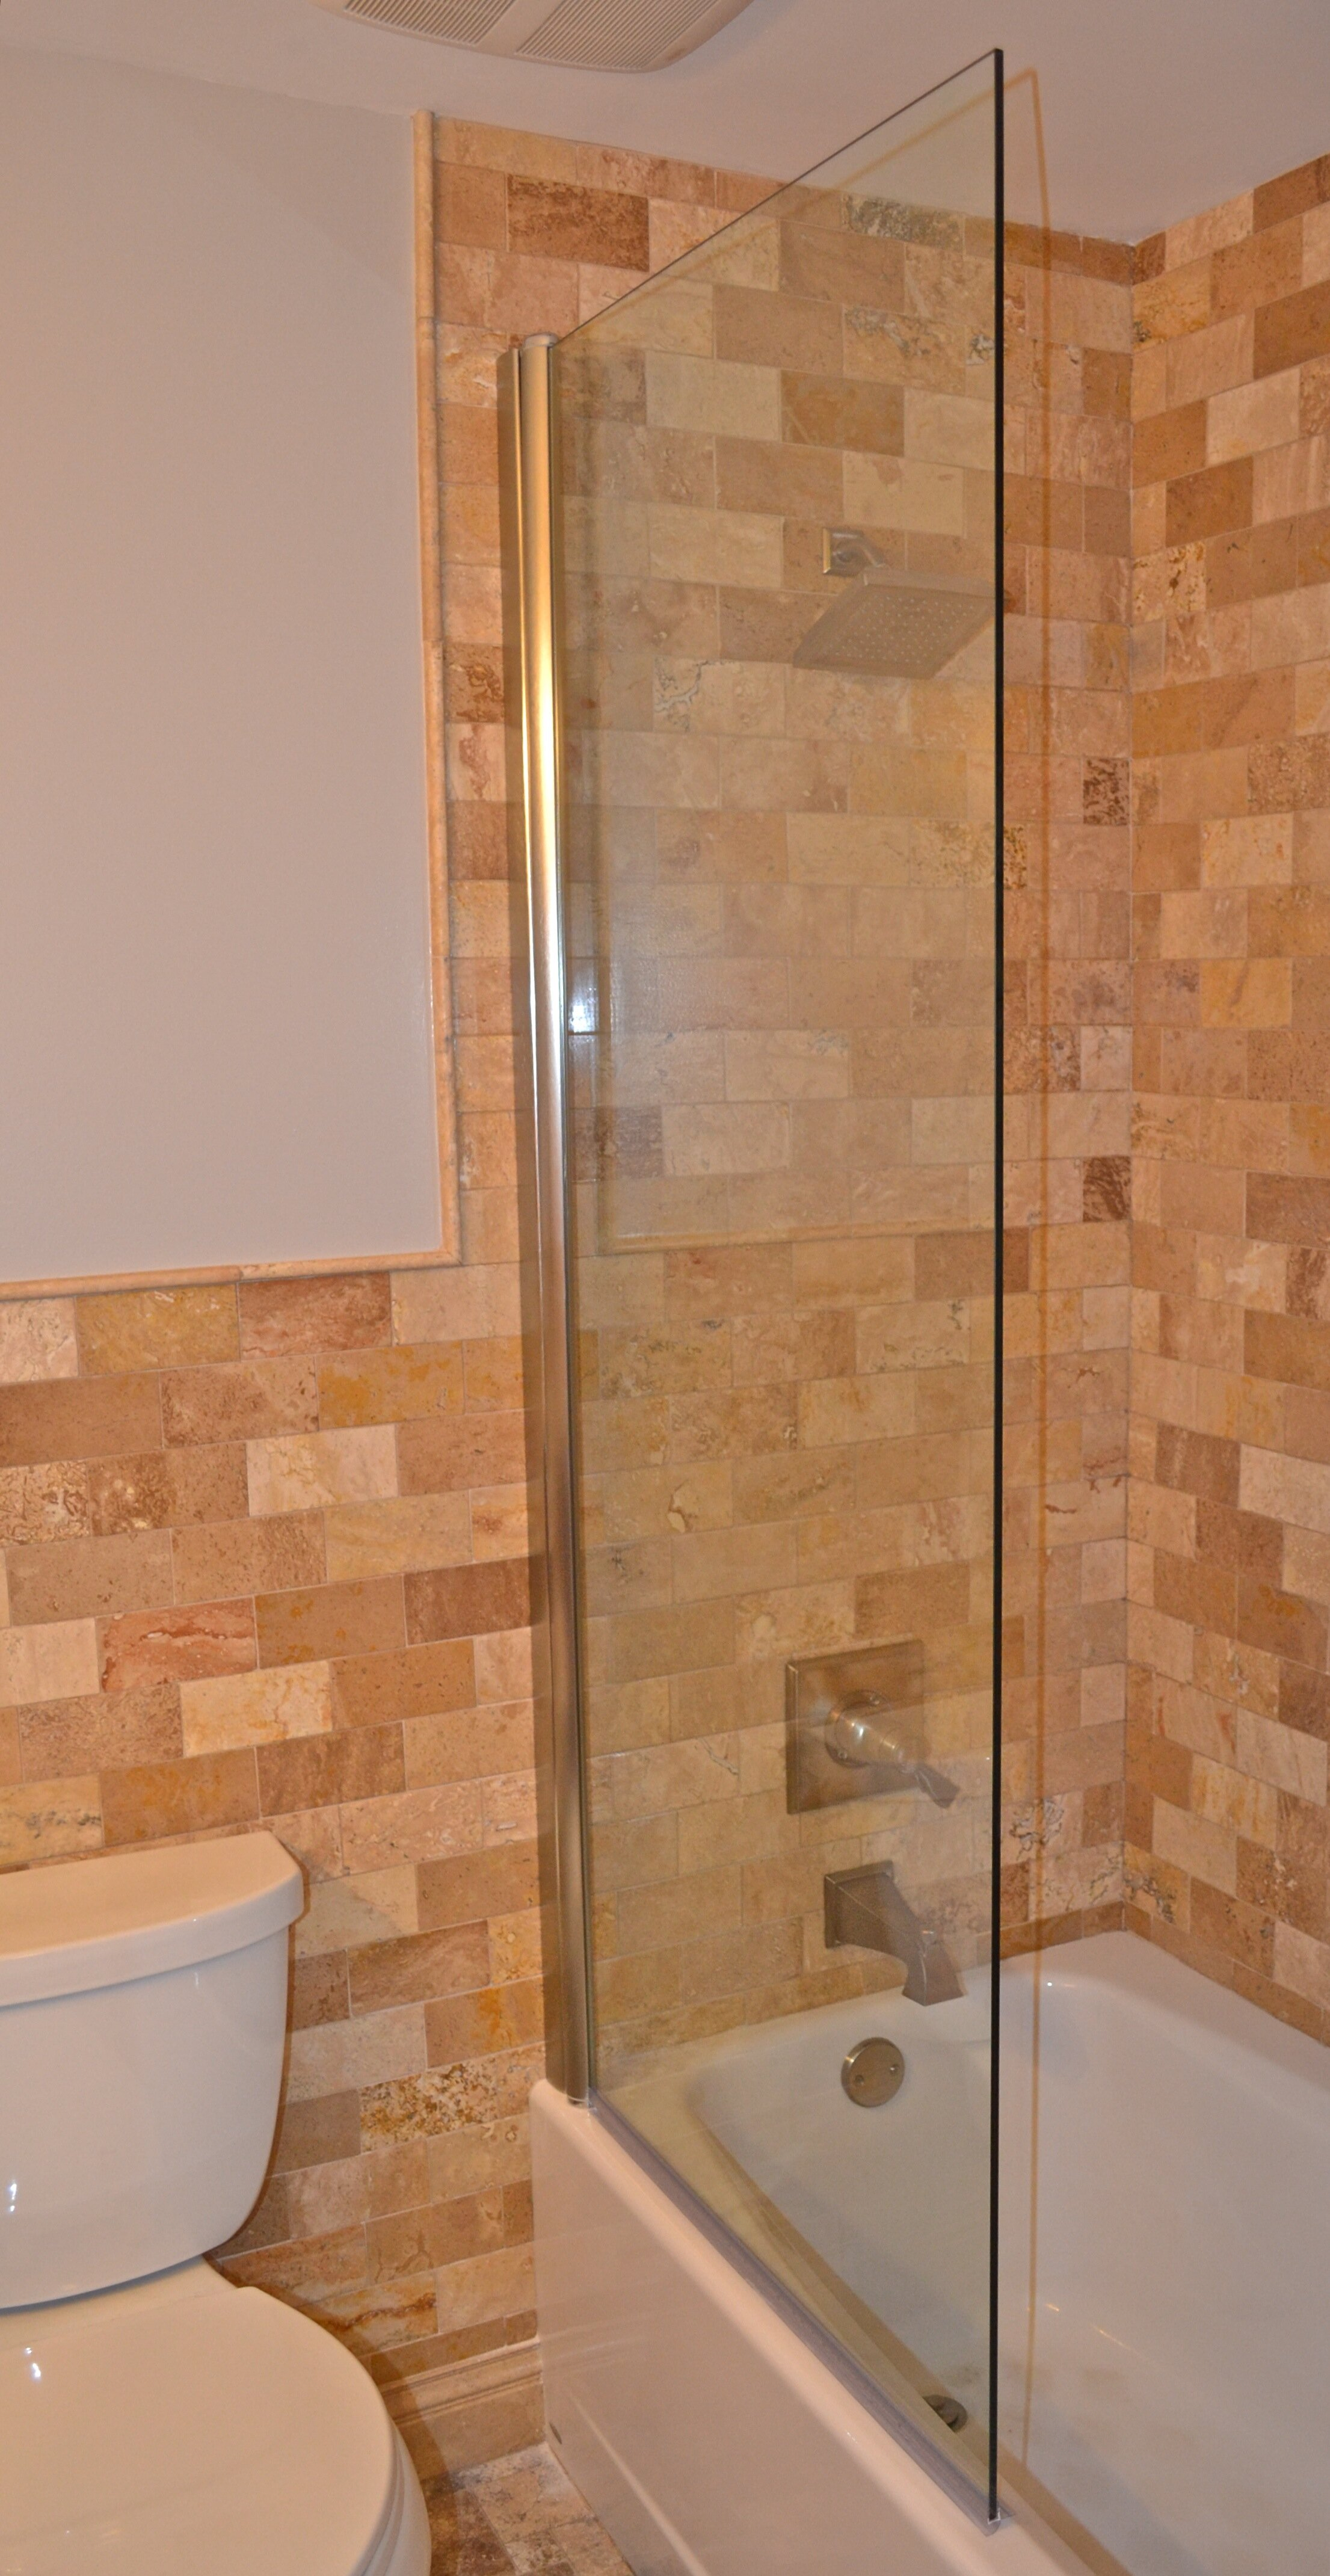 30 X 70 Pivot Semi Frameless Tub Door With Clearshield Technology